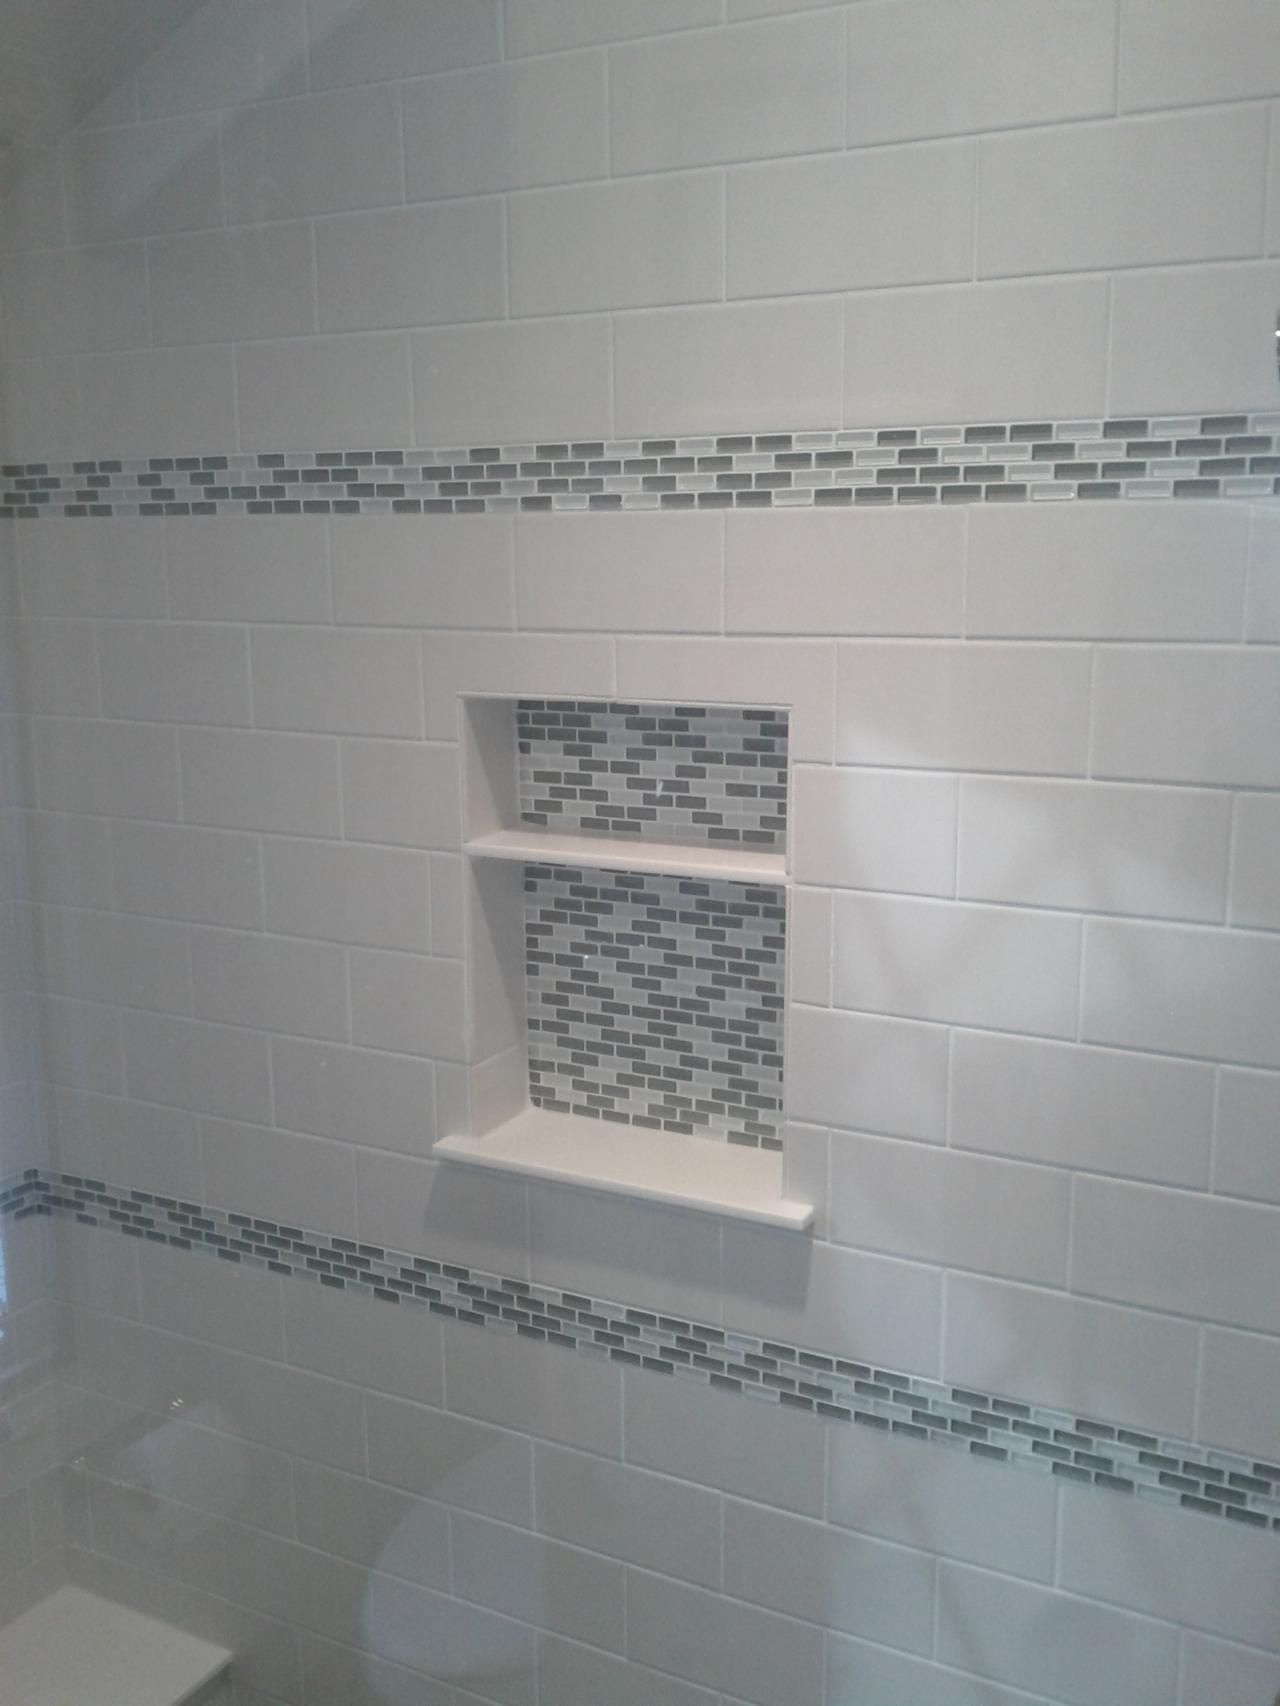 Bathroom Shower Tile Photos this picture shows a bathroom tile remodeling project in an edina